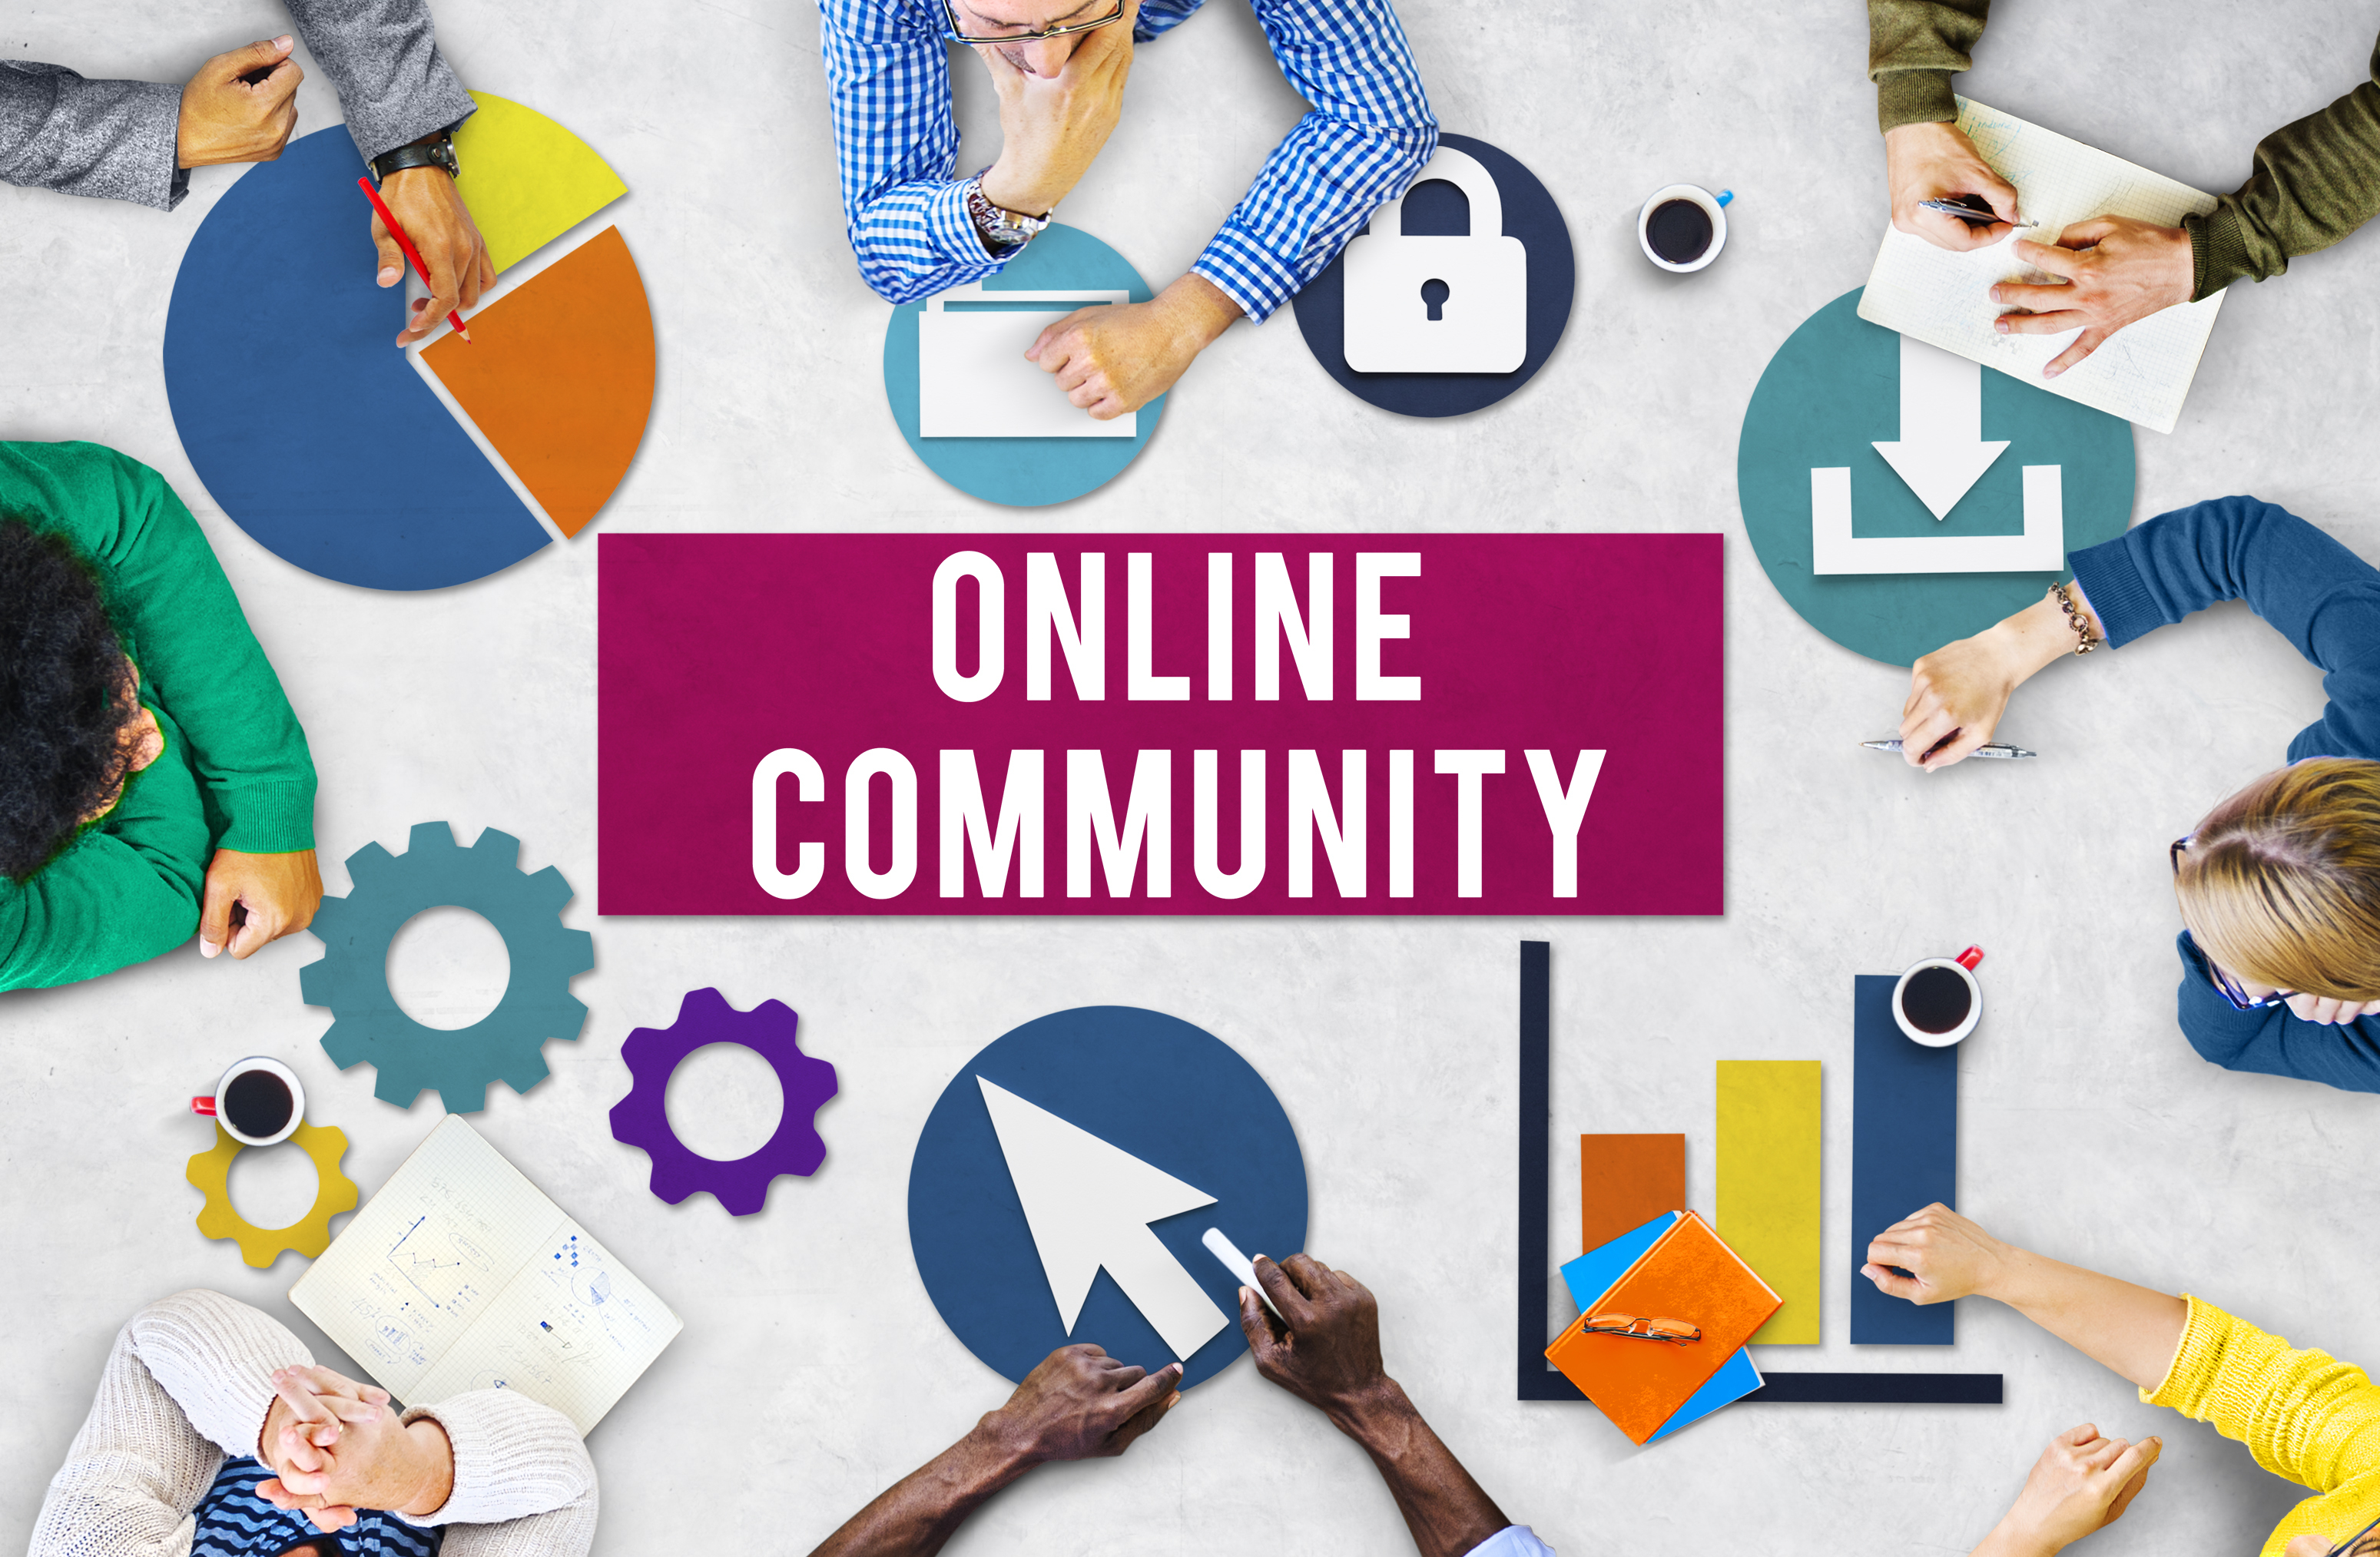 minding online community